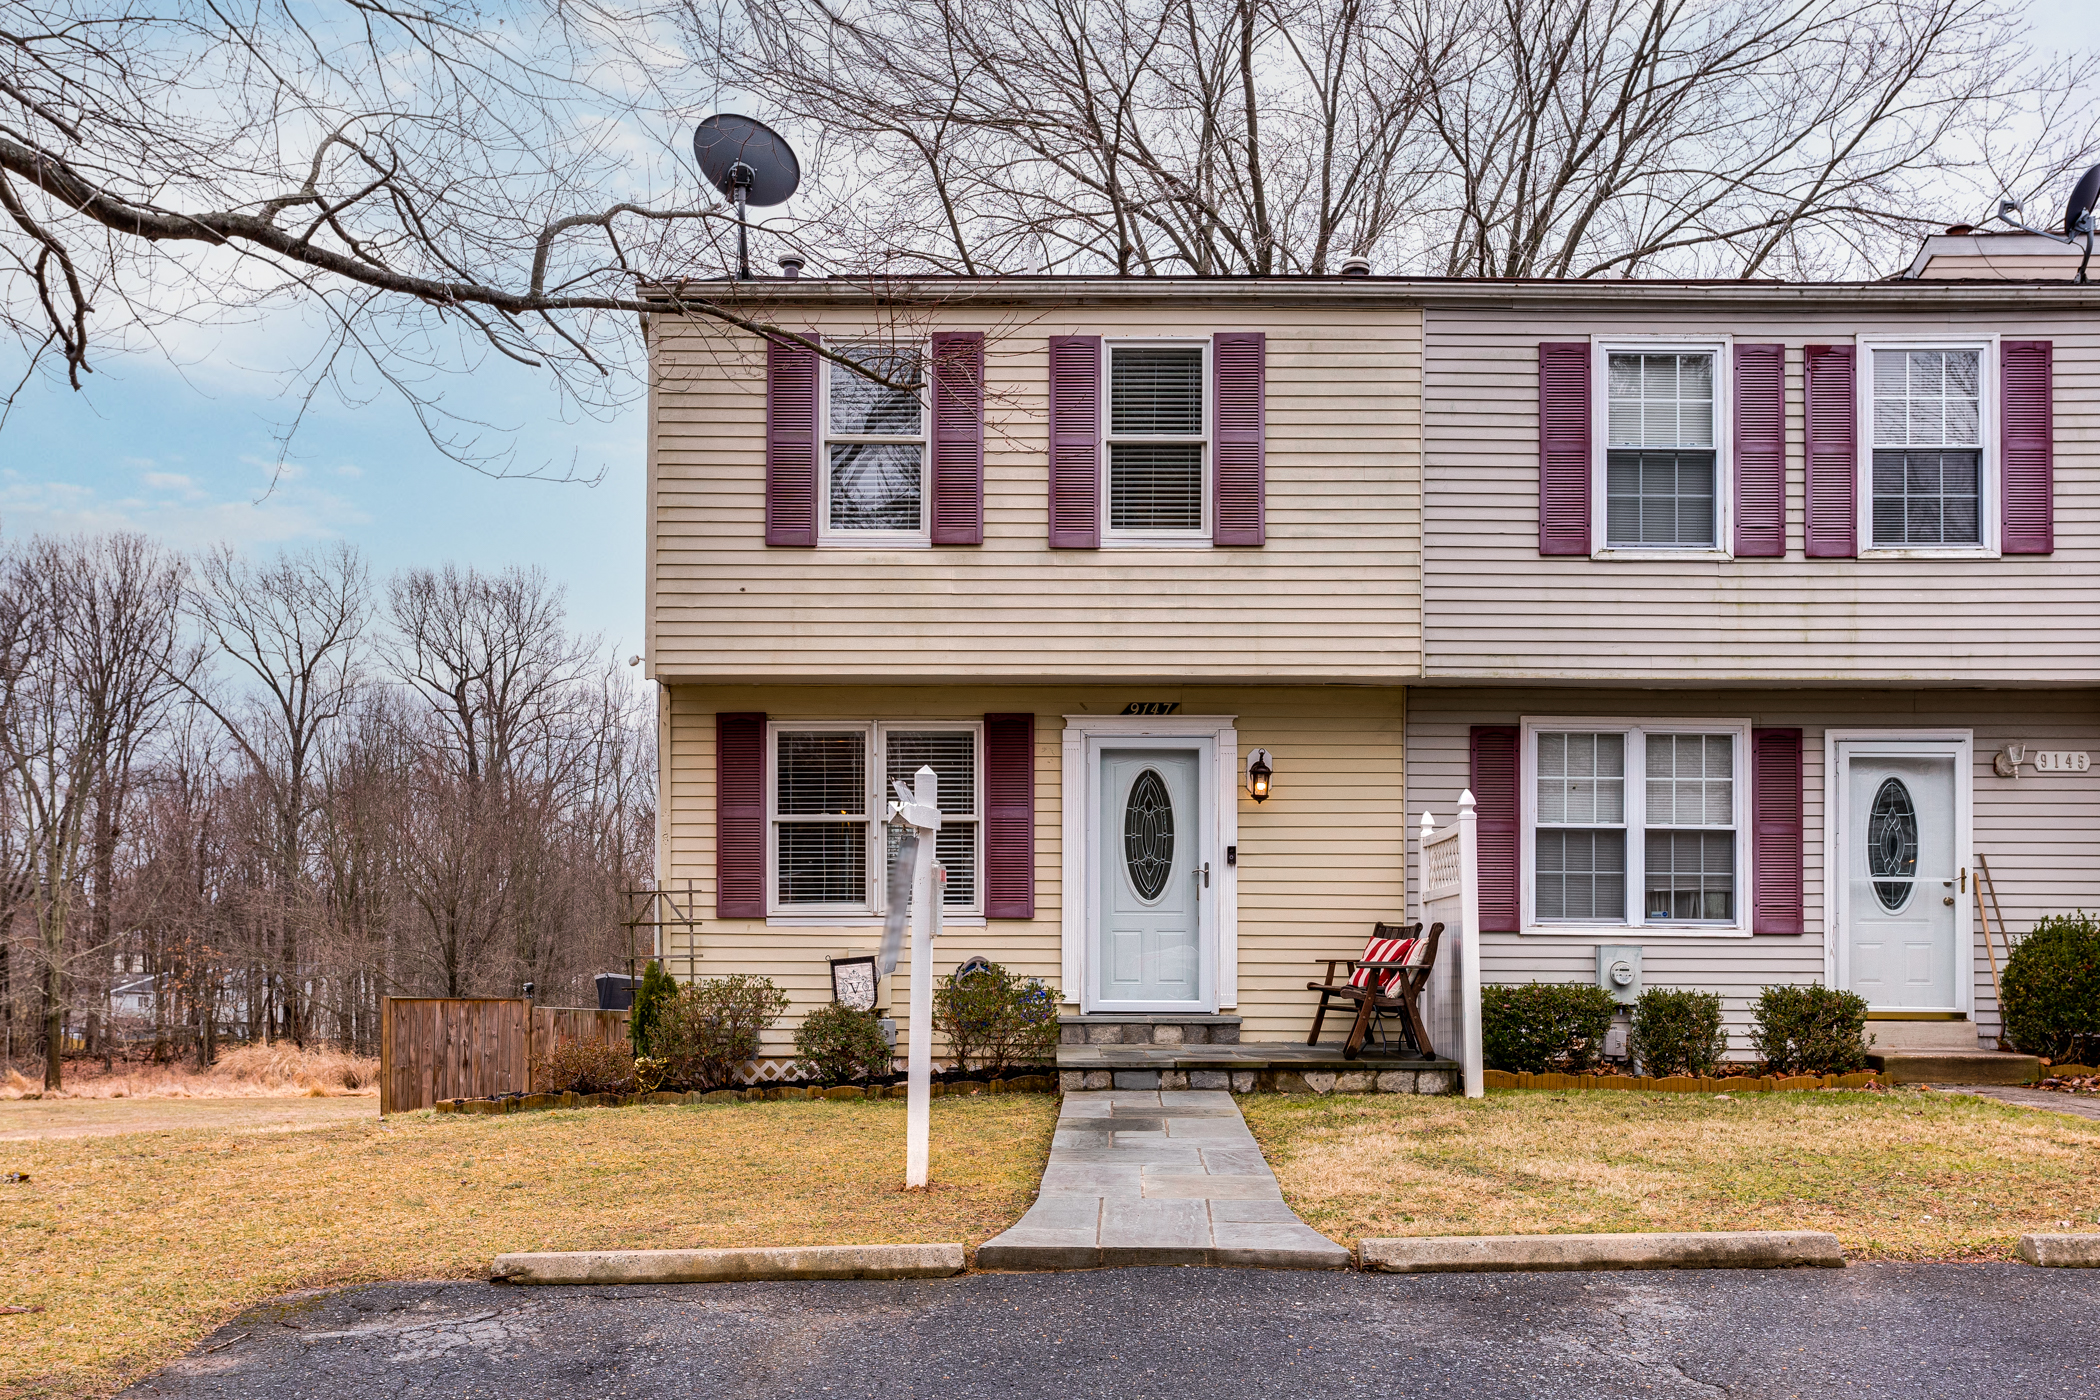 ACTIVE | 9147 Chesley Knoll Court | Gaithersbur MD 20879